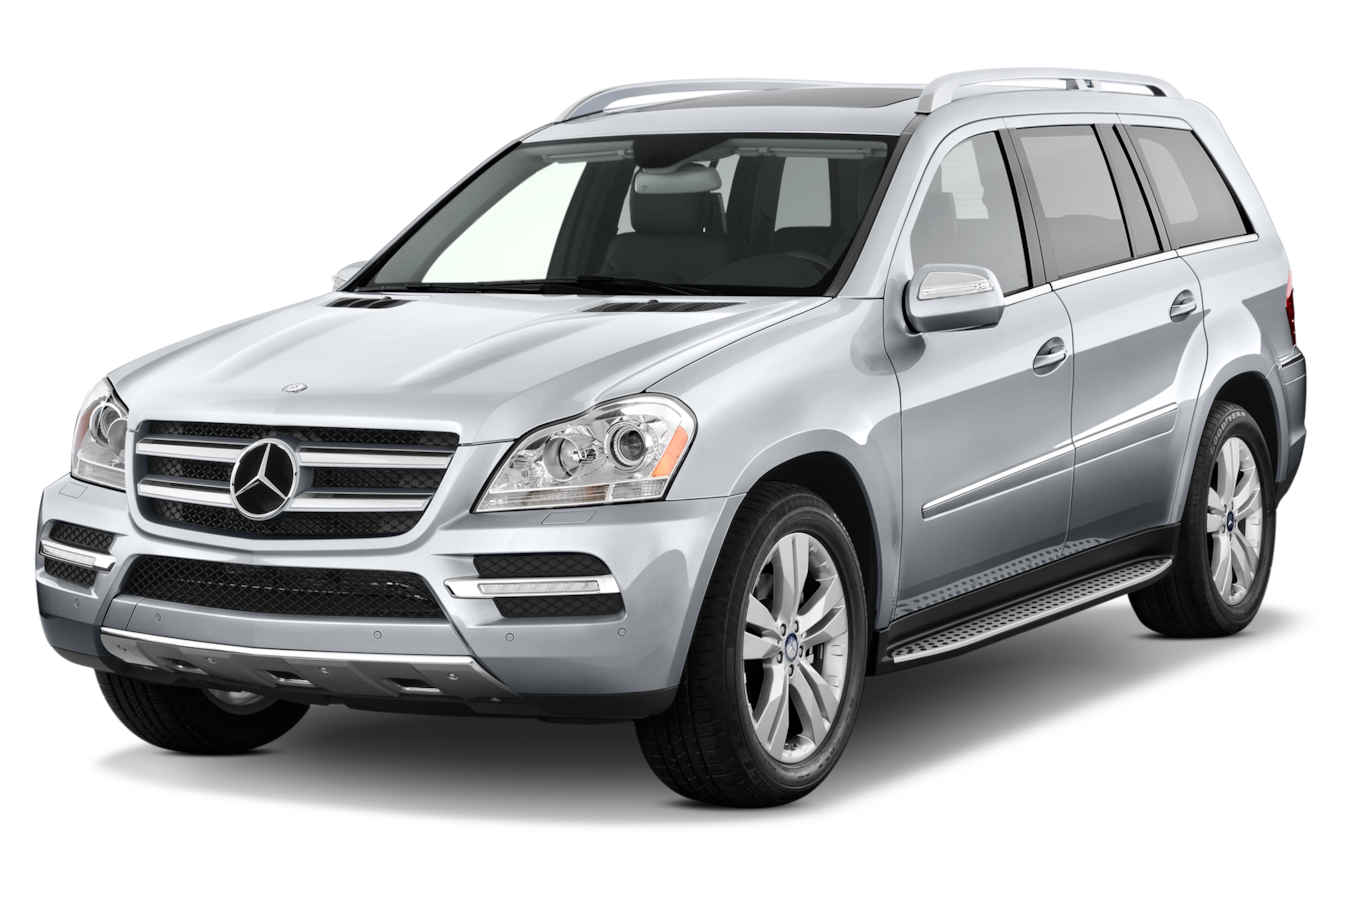 2010 Mercedes-Benz GL-Class Reviews and Rating | Motor Trend